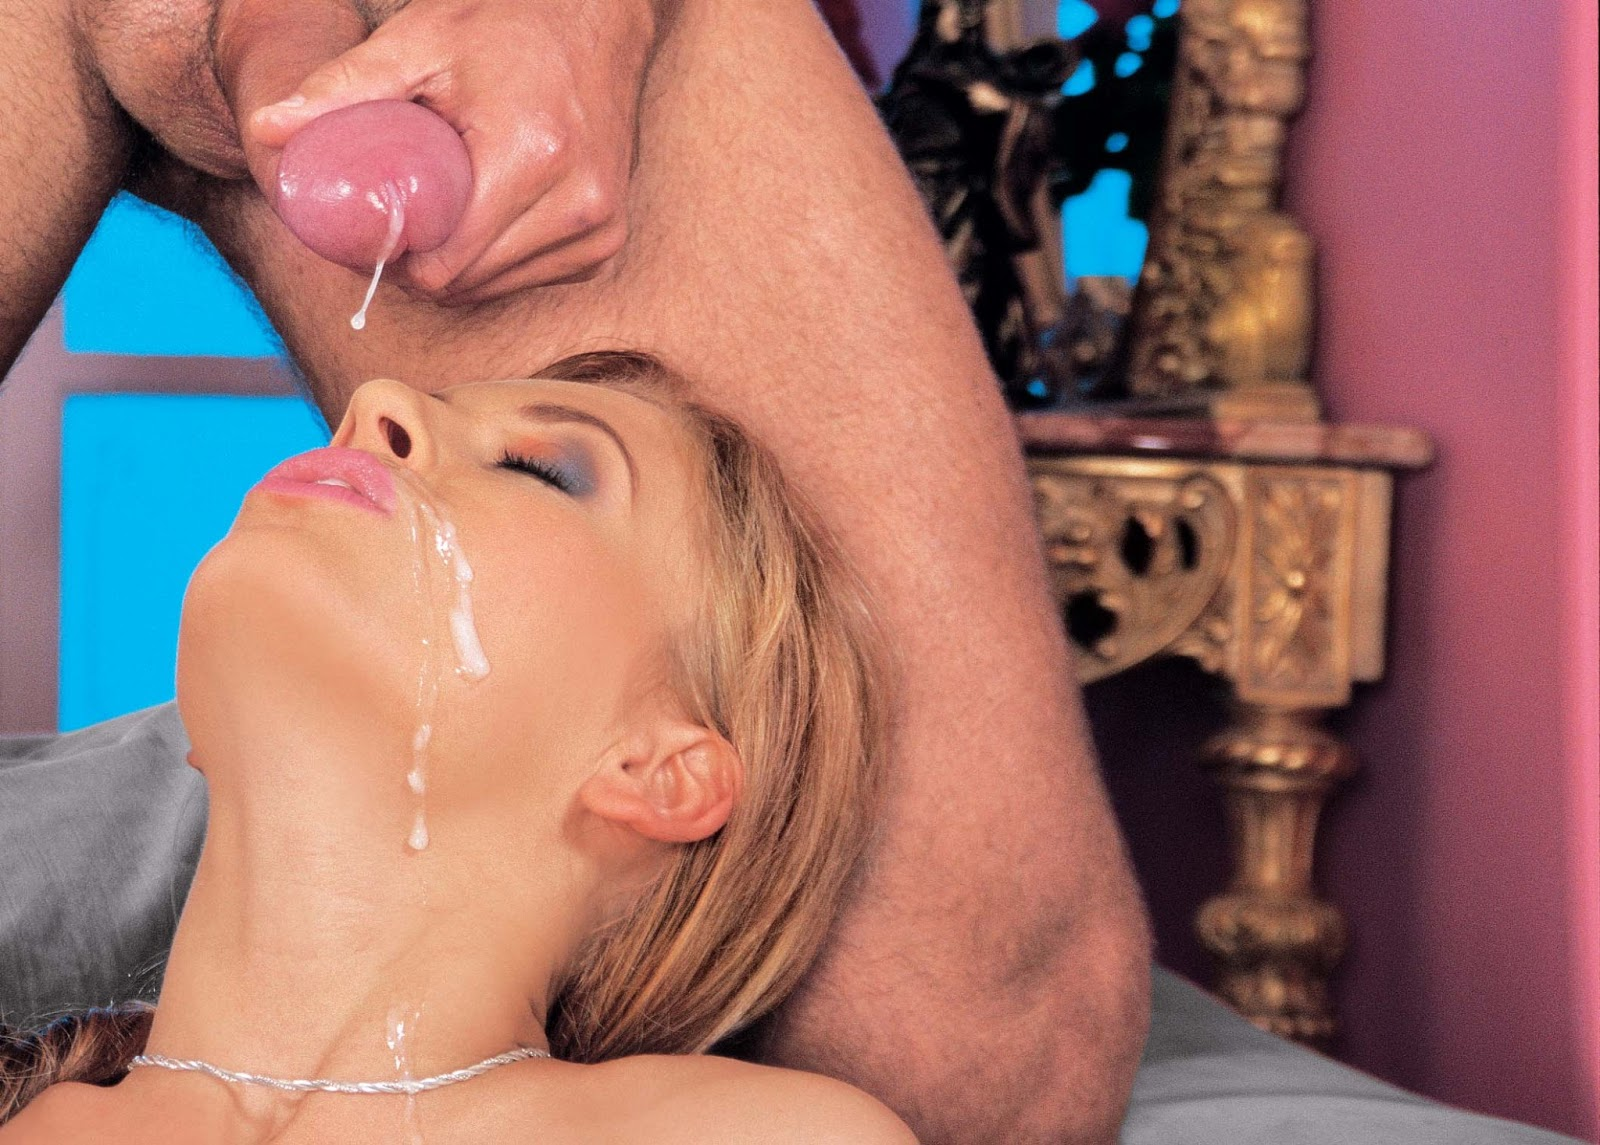 Brandi belle gives amazing blowjob